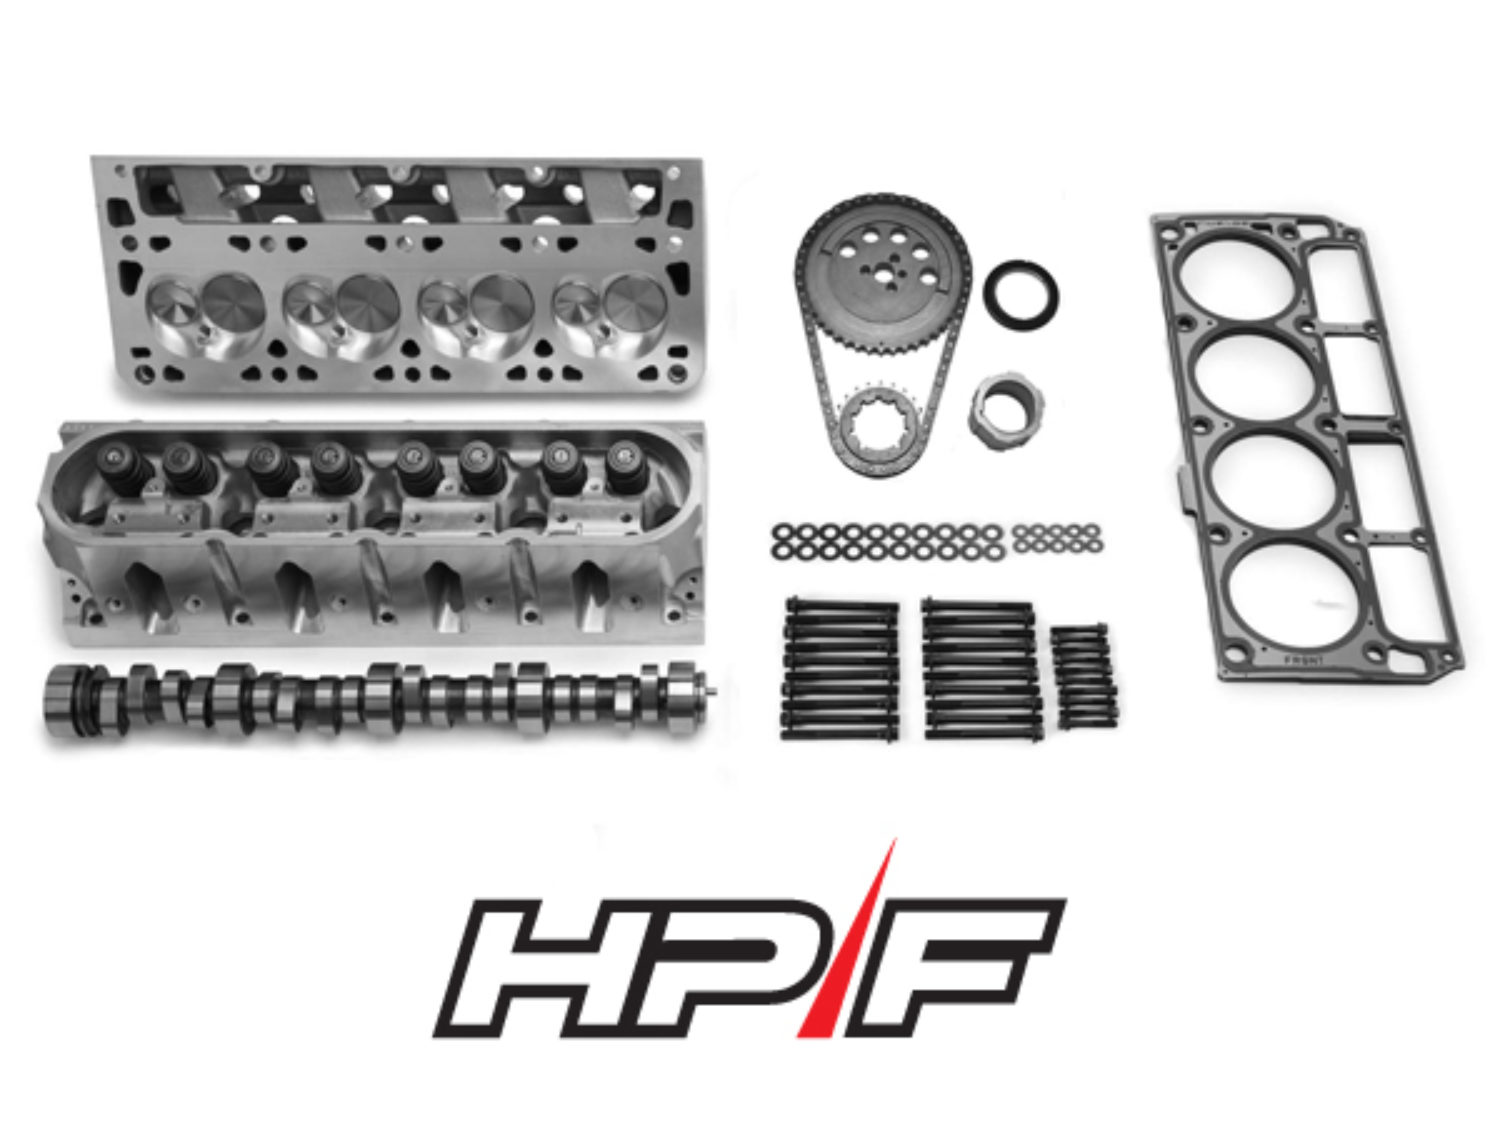 VT-VZ V8 Head & Cam Package - VT-VZ V8 | HPF Head & Cam